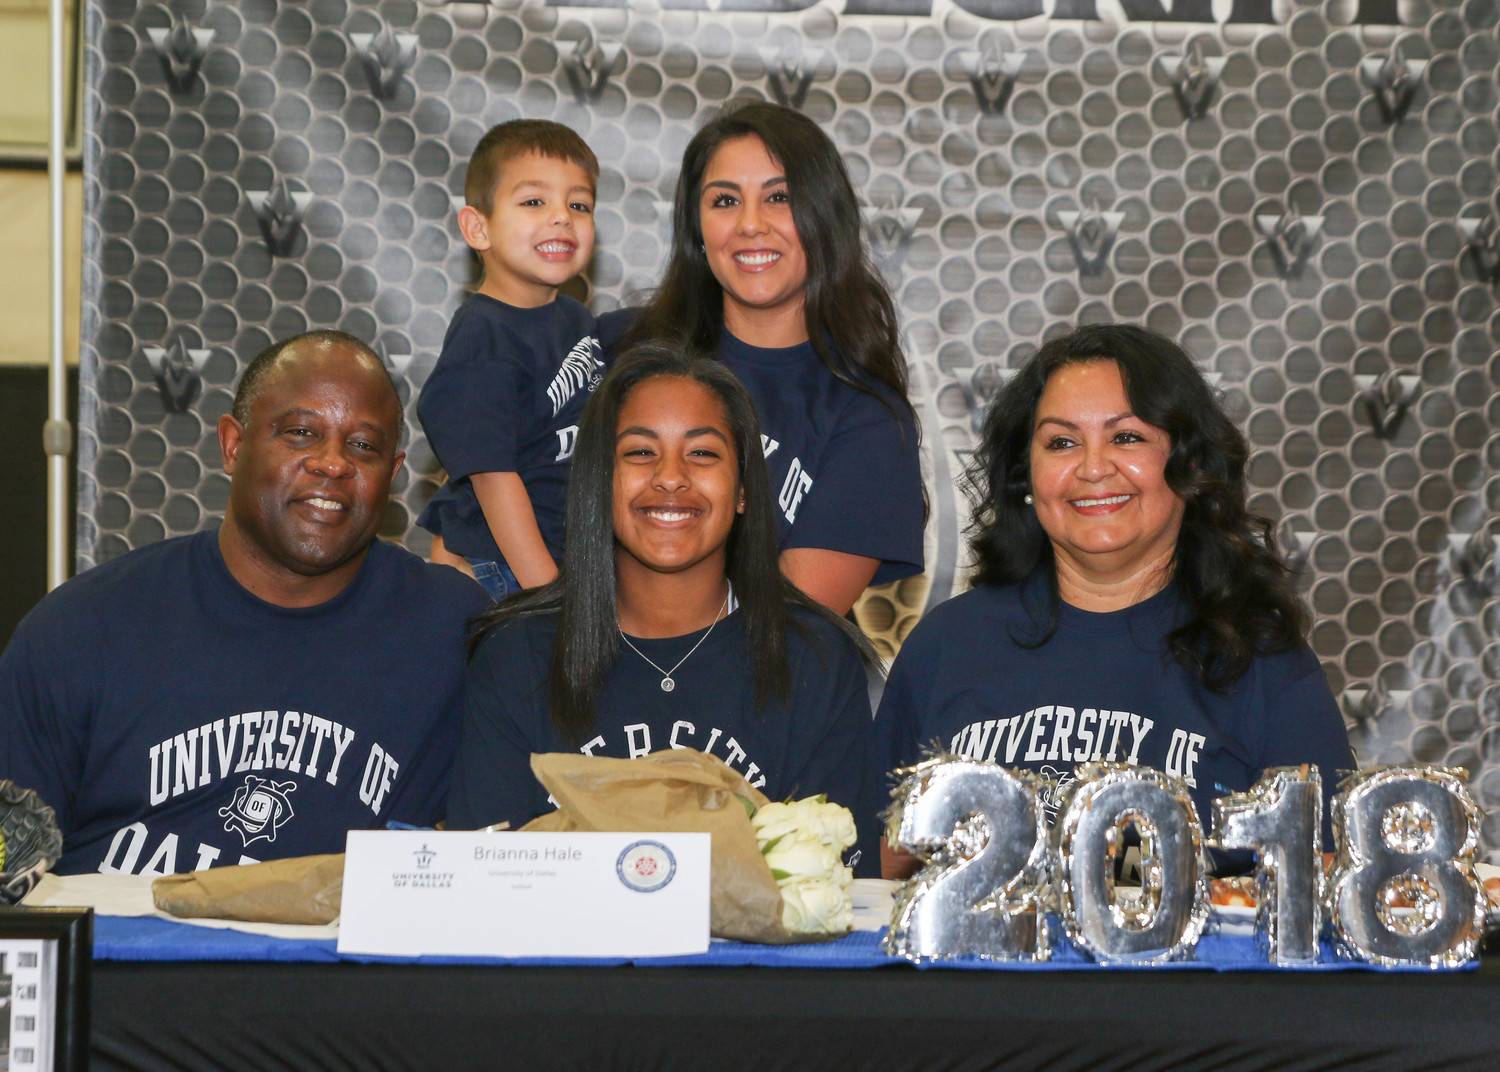 Brianna Hale signed a letter of intent to play softball at the University of Dallas during a signing day ceremony at Vandegrift High School on February 7, 2018.